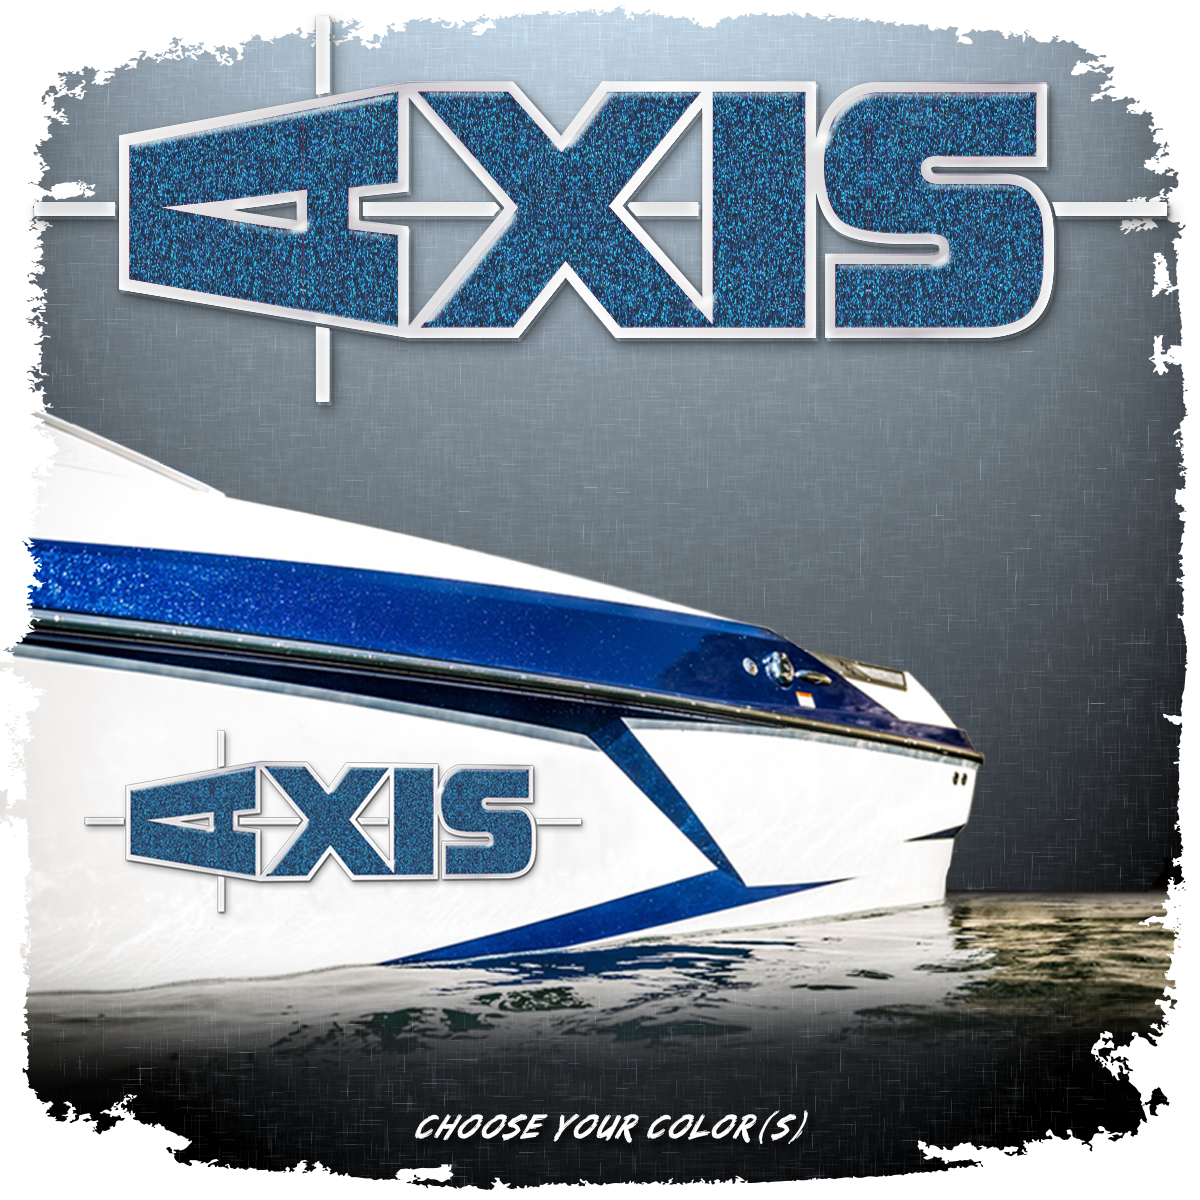 Domed Axis Hull Decal - Solid Version, Choose Your Own Colors (1 Decal Included)